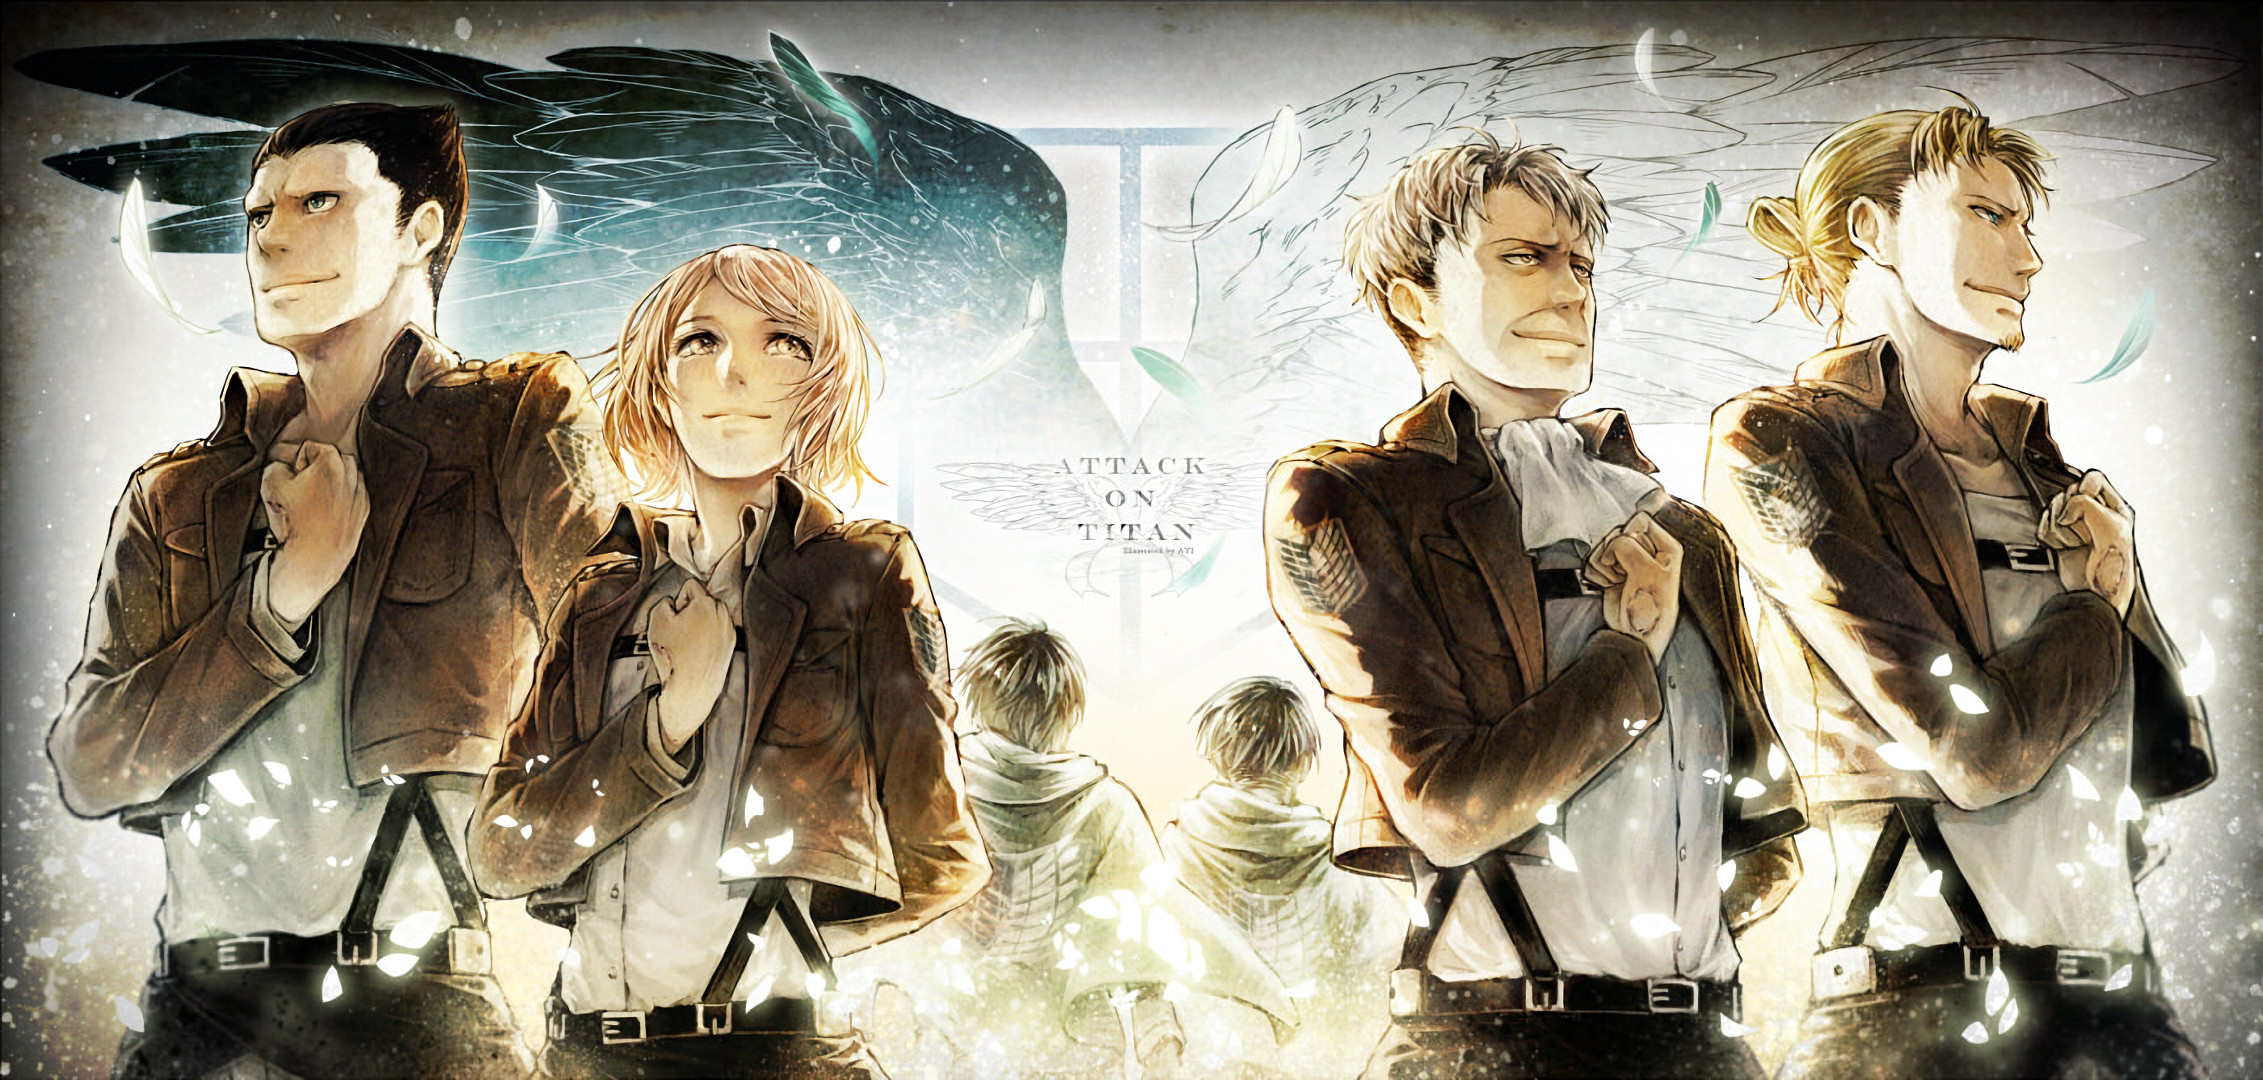 attack on titan live action full movie free download